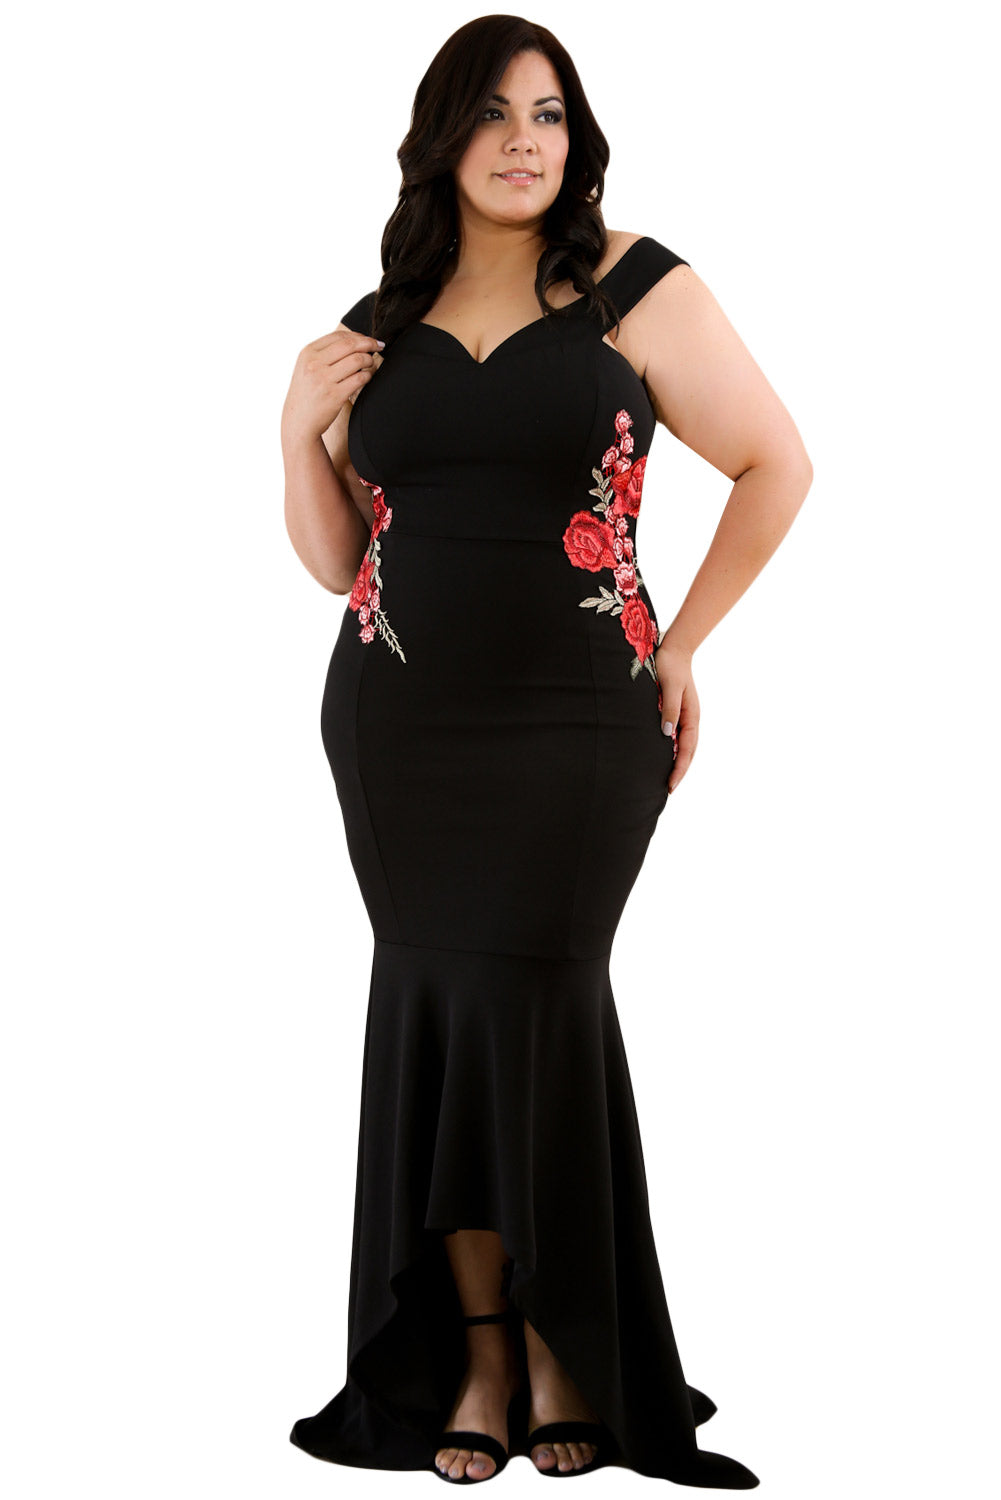 6783ed3417 Sexy Black Plus Size Embroidery Floral Mermaid Maxi Dress –  SexyAffordableClothing